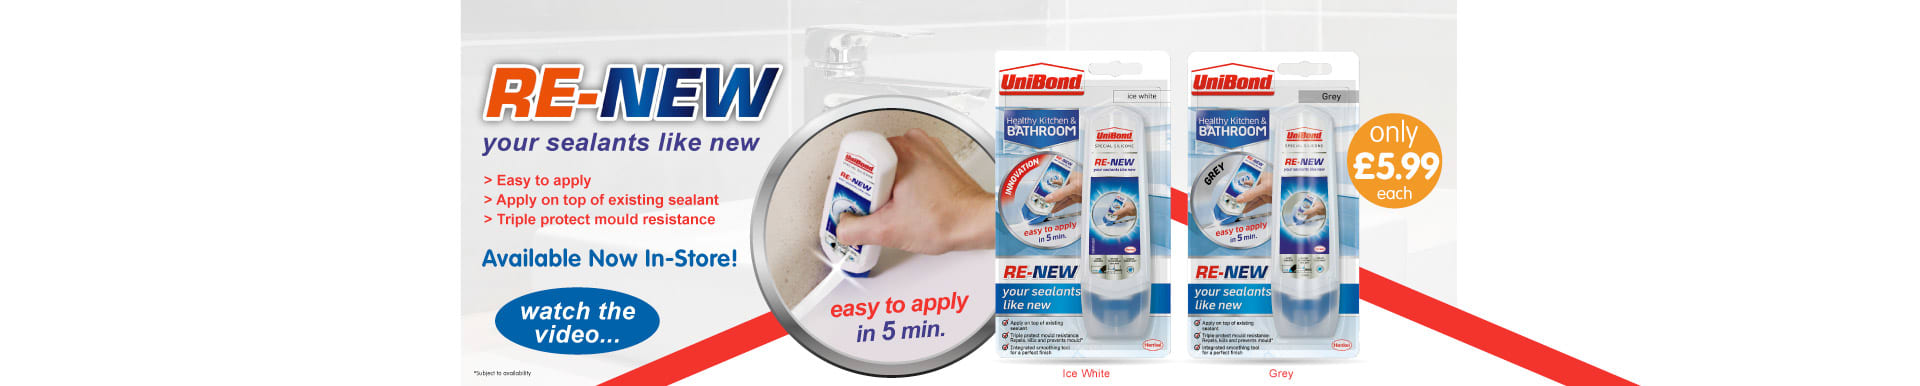 Save on Unibond Re-new sealant from B&M.